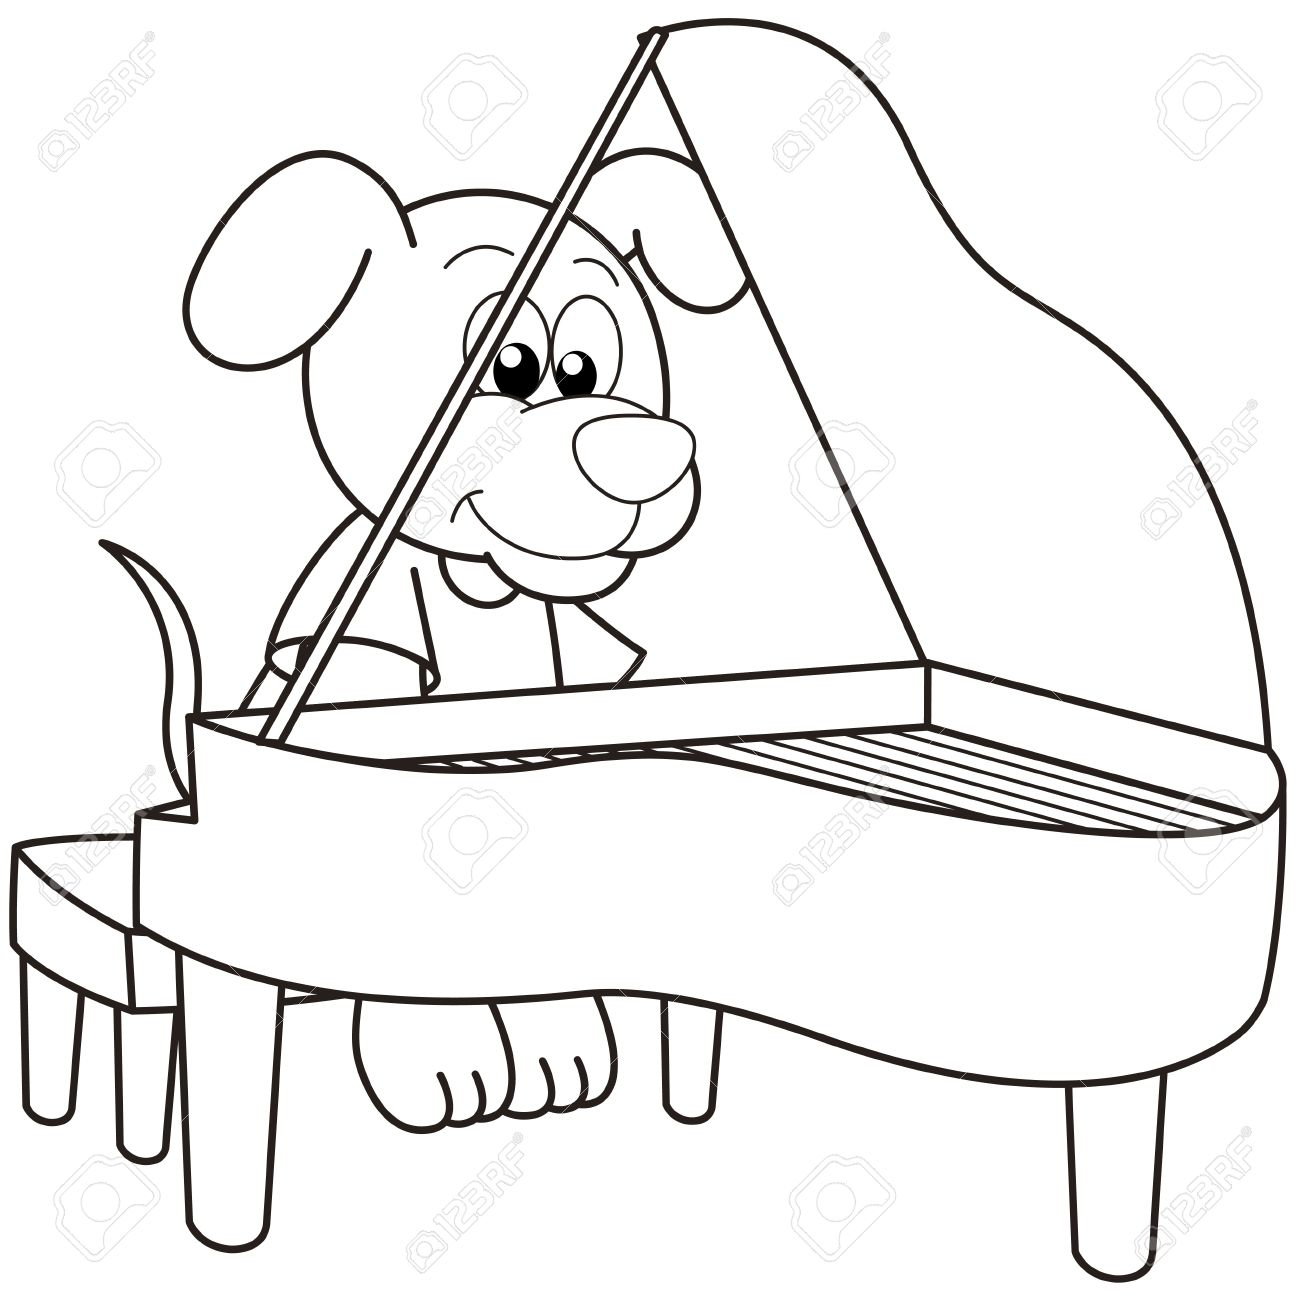 1300x1300 Cartoon Dog Playing A Piano Black And White Royalty Free Cliparts